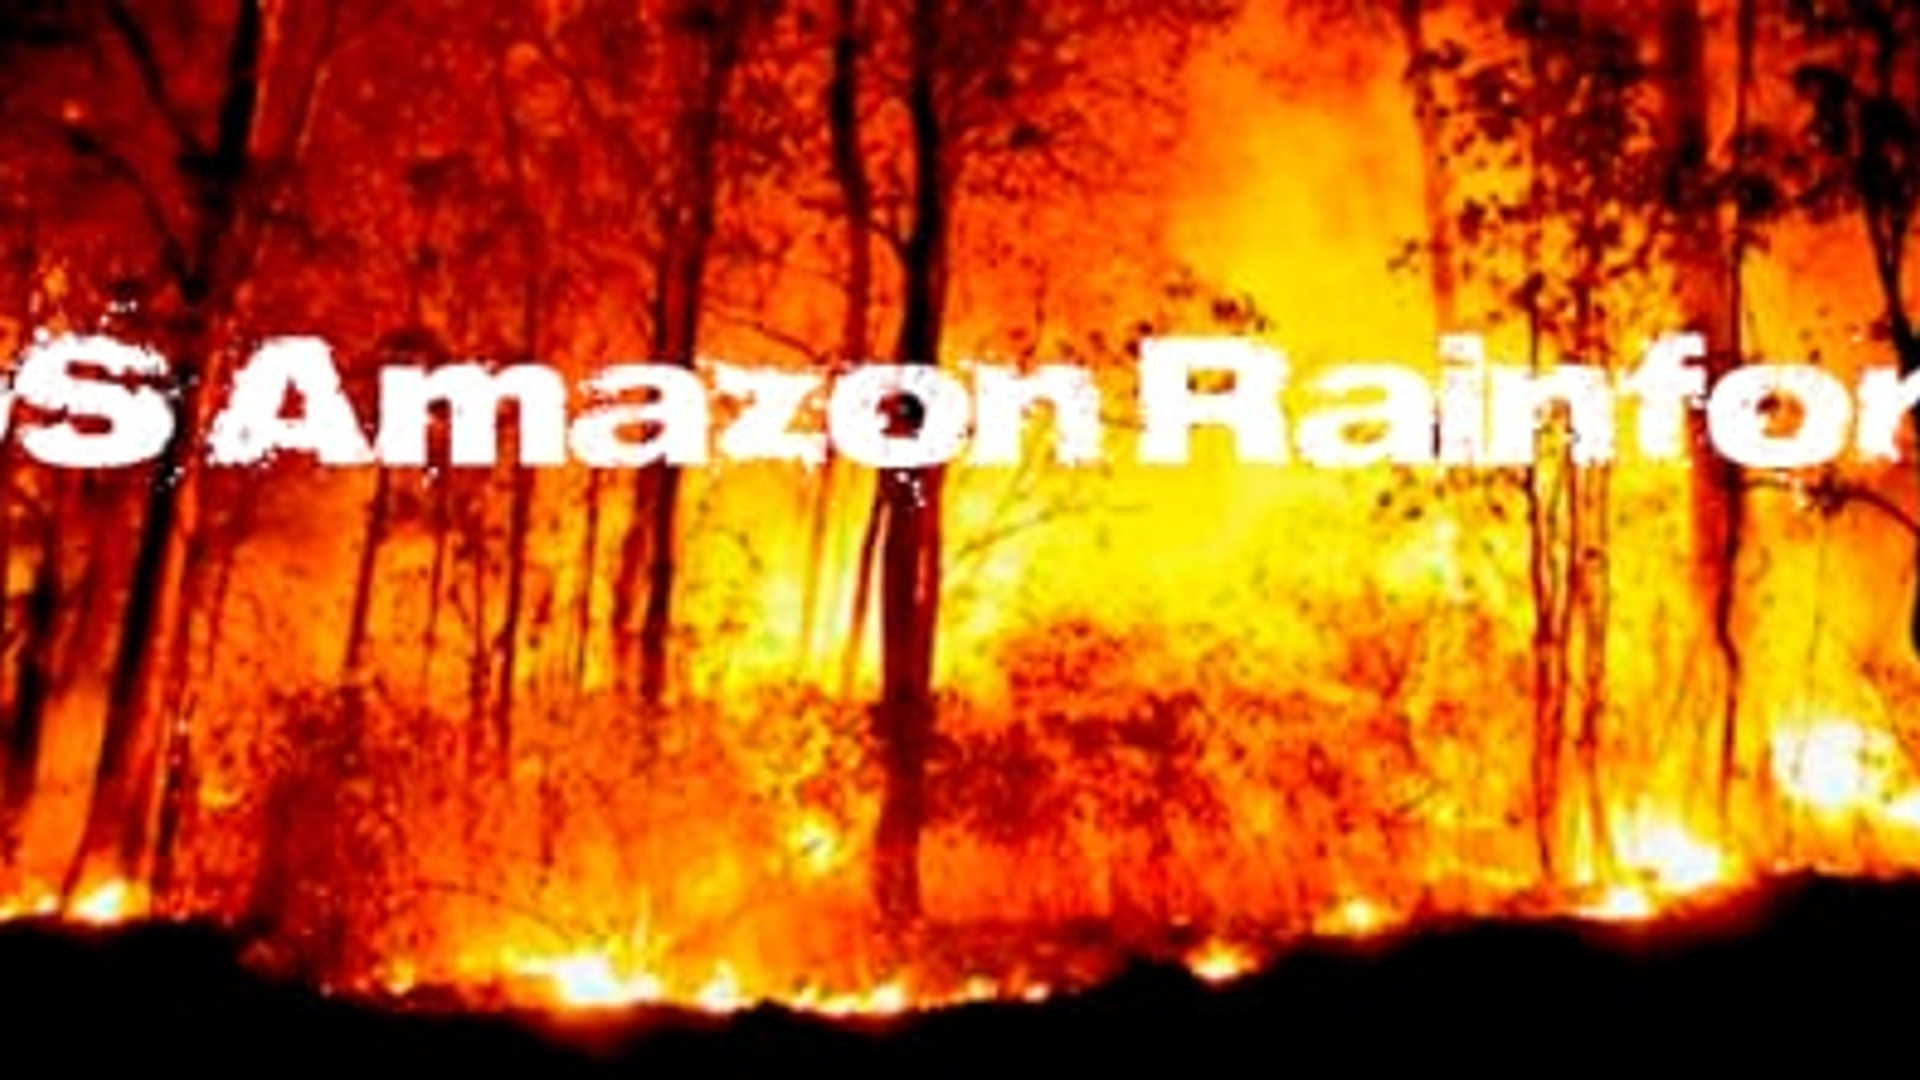 SOS Amazon Rainforest